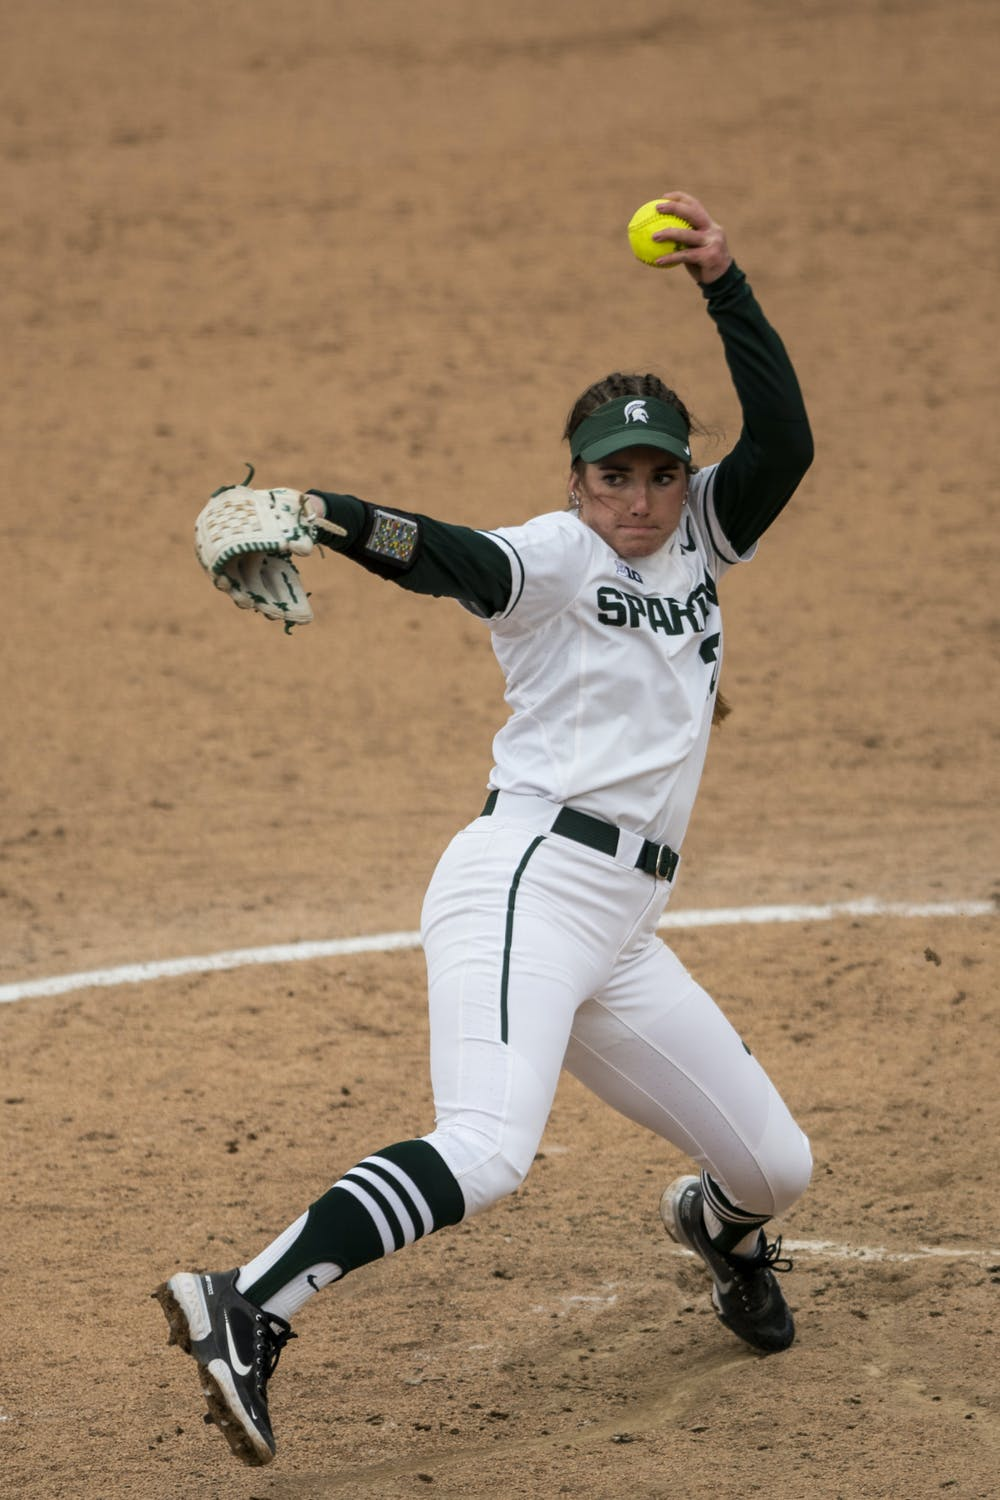 Sophomore pitcher Sarah Ladd (20) throws a pitch during the game against Rutgers on March 28, 2021, at Secchia Stadium. The Spartans defeated the Scarlet Knights 4-1.